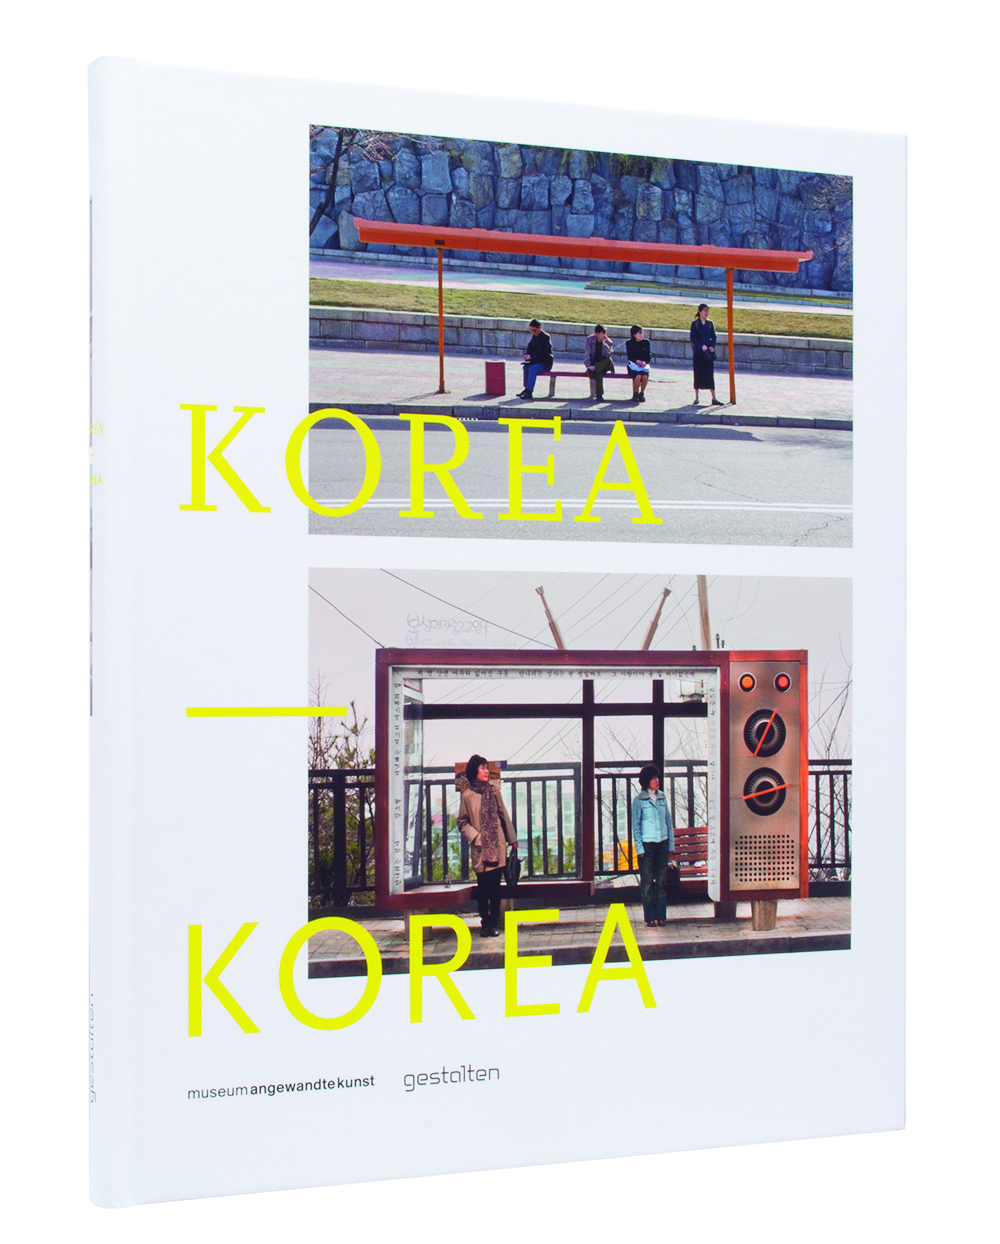 korea-korea_pressphoto_side